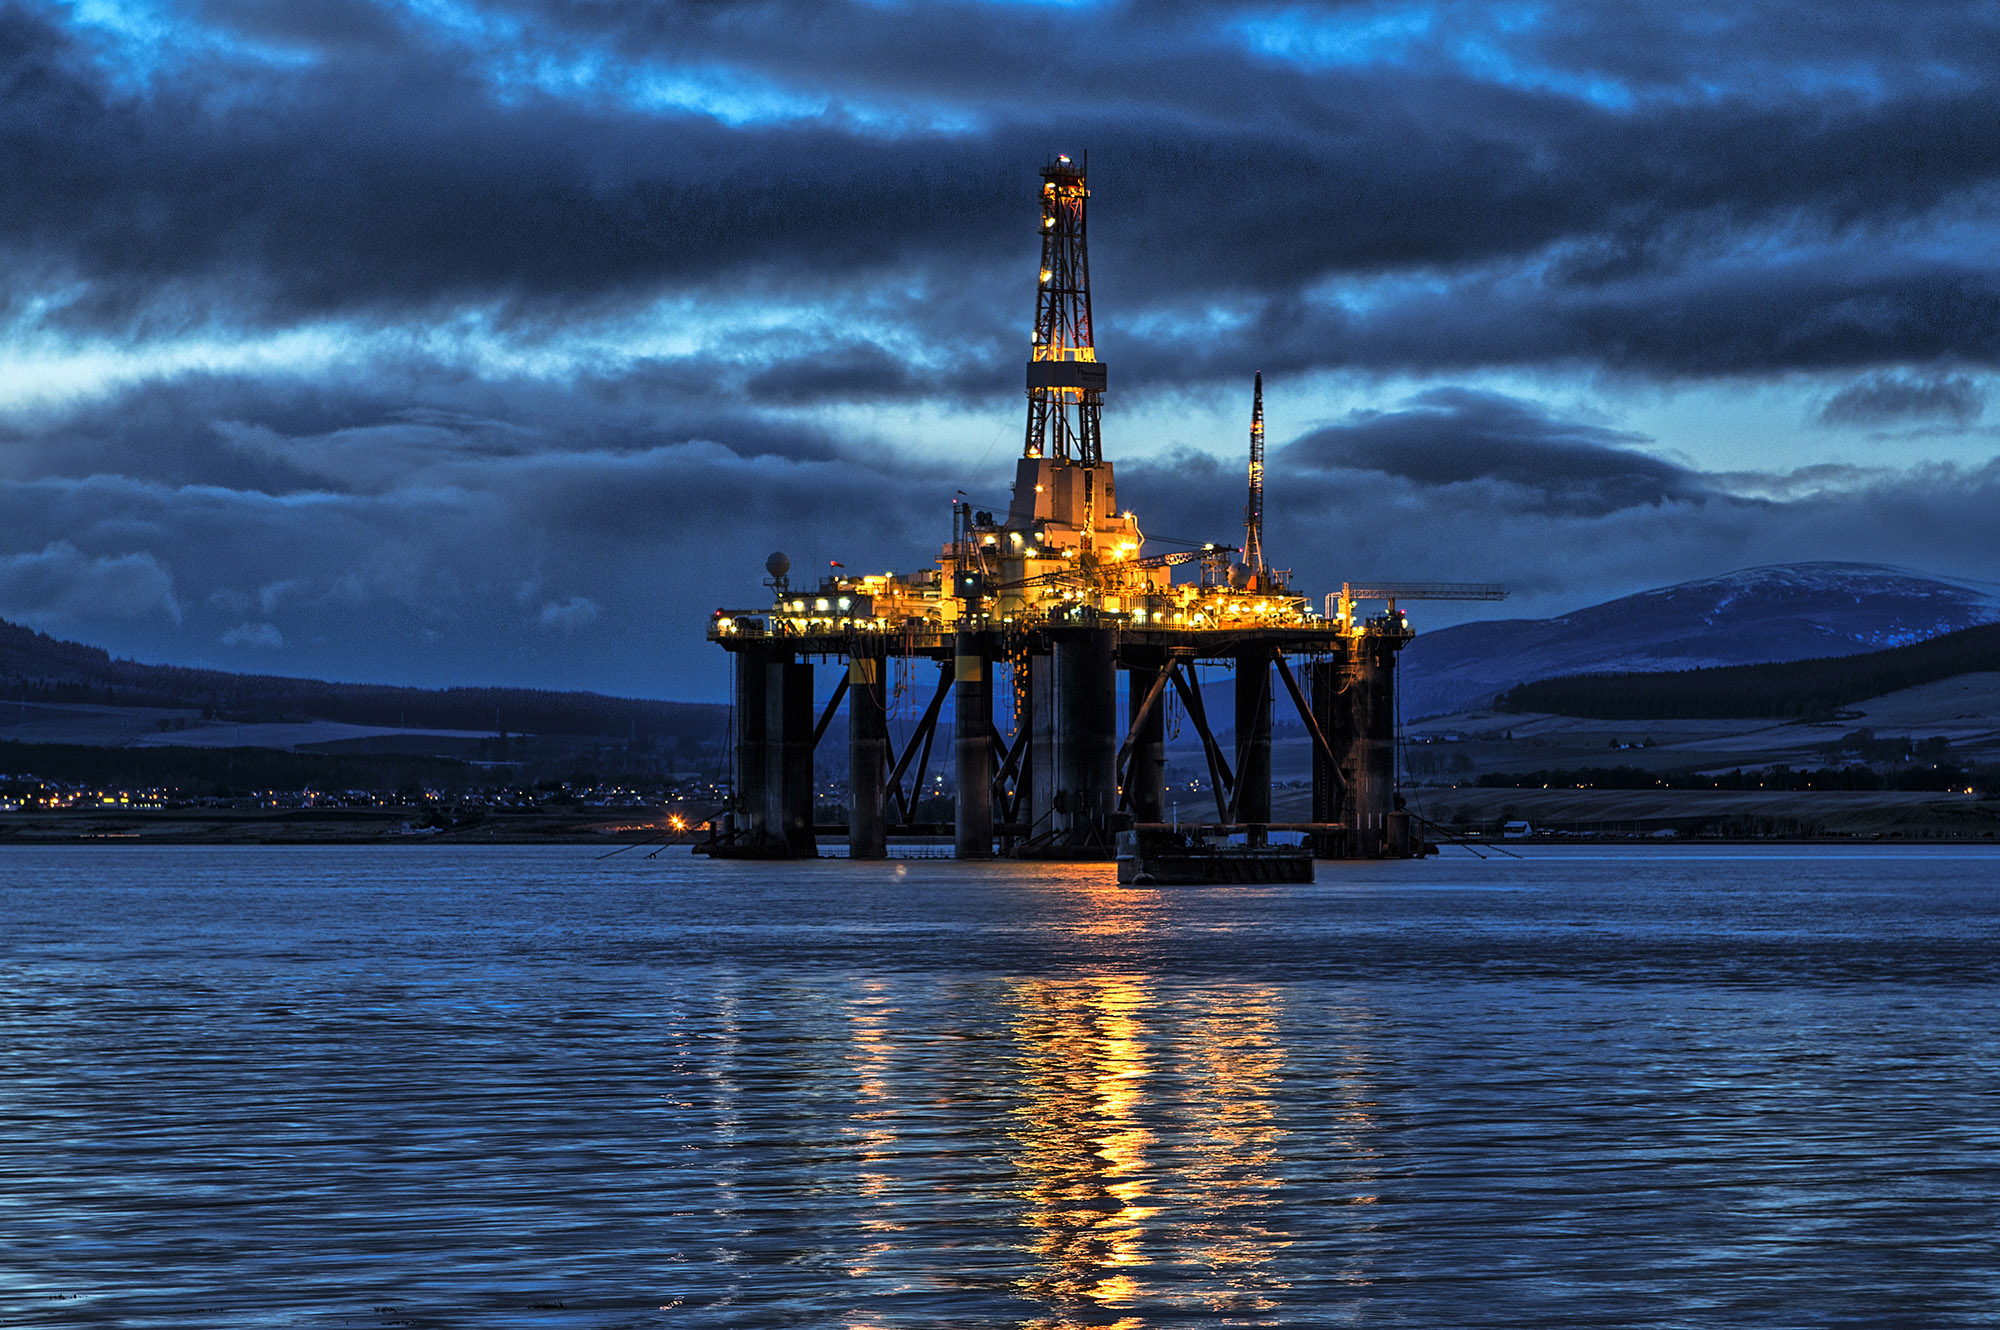 Low Light, Oilrig, Cromarty Firth